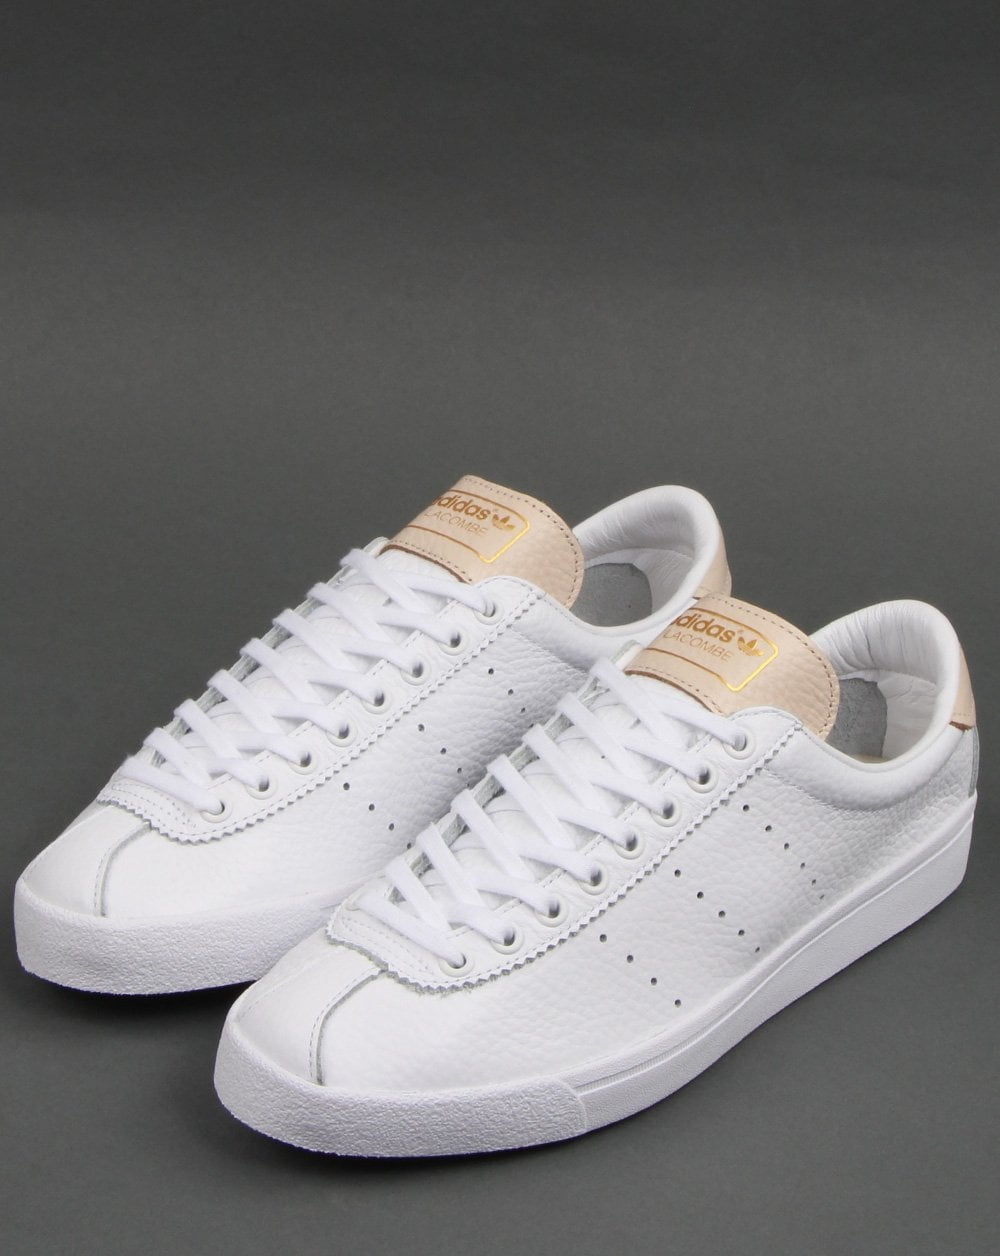 Adidas Lacombe Trainers White/Pink